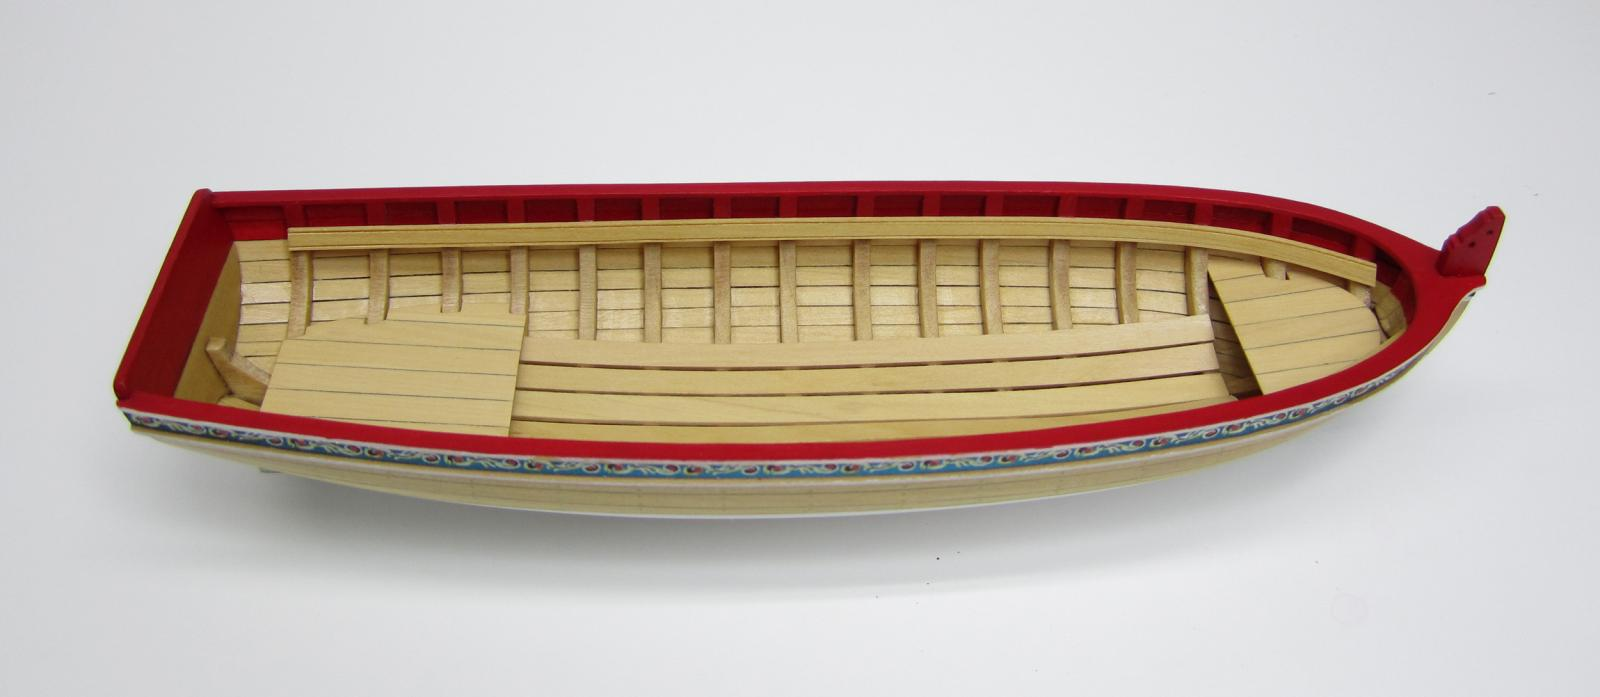 how to make ship model at home